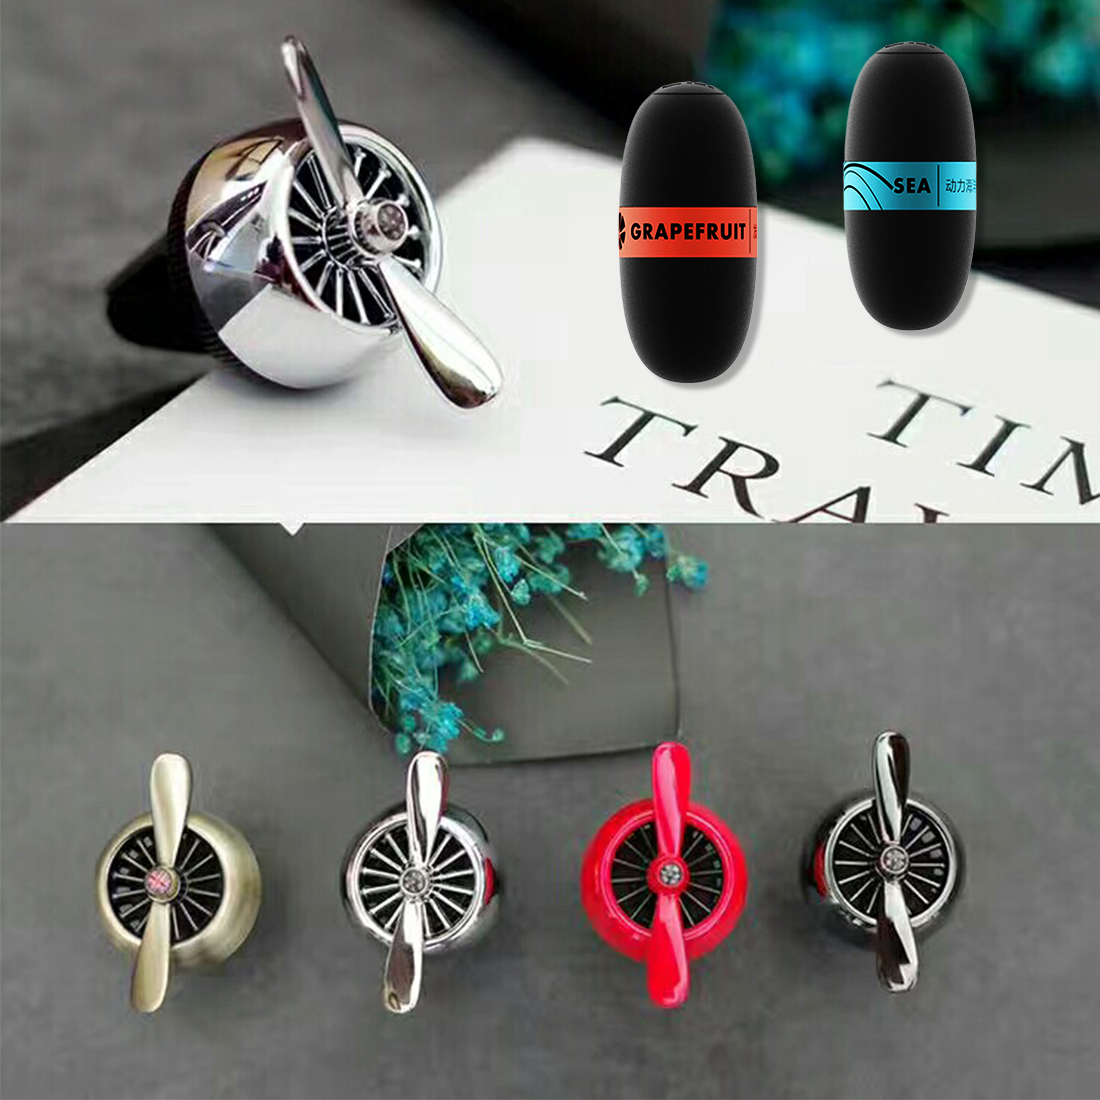 BU-Bauty hot sale car styling car accessories car air freshener air conditioner outlet vent clip car perfume AC scent